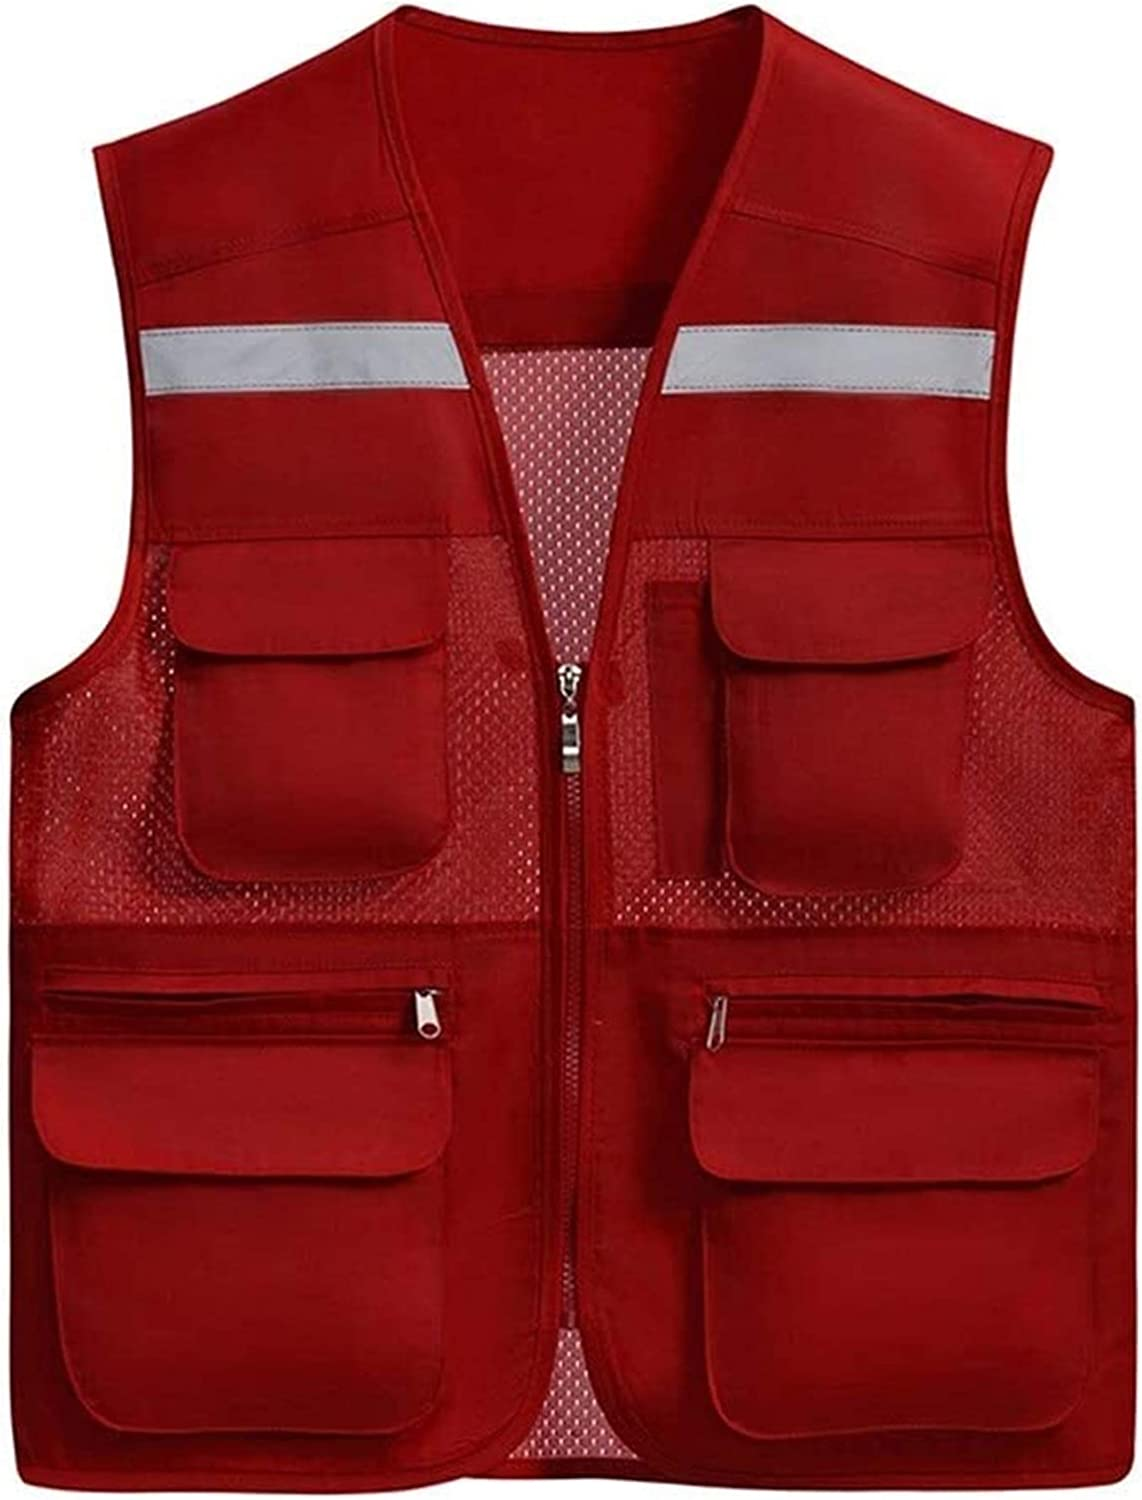 WOAIM Vis Max 82% OFF Vest High Visibility and Waistcoat Light Tr Breathable gift